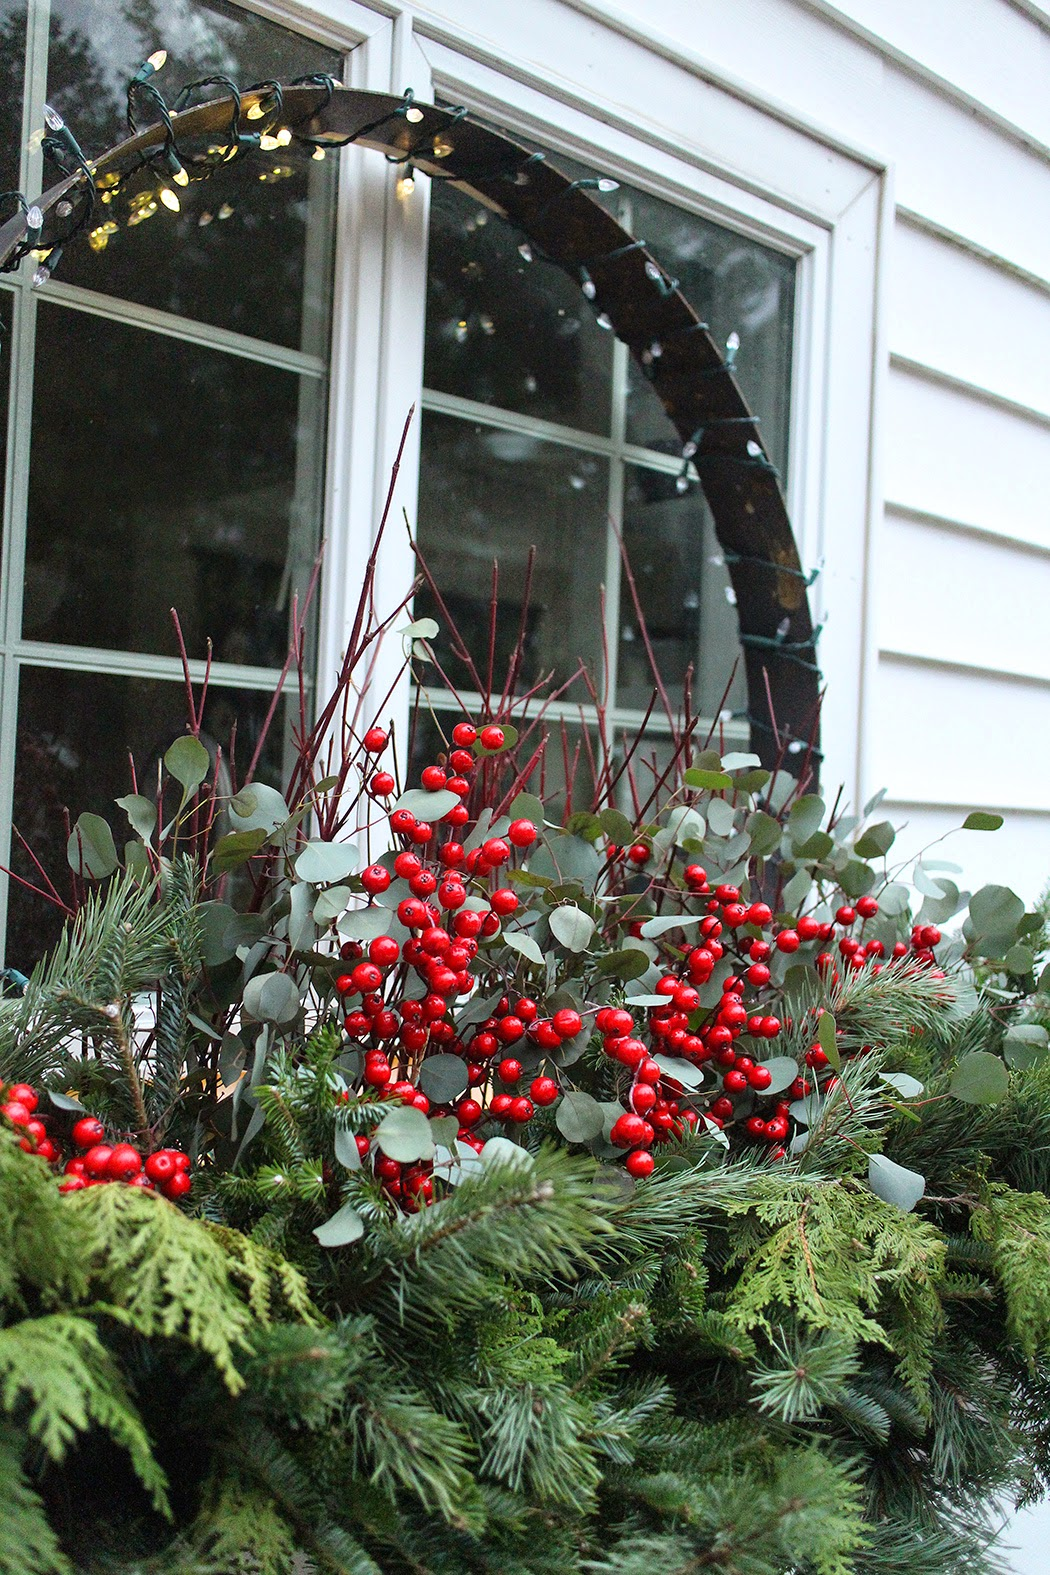 The Impatient Gardener: HOLIDAY CHEER FOR OUTSIDE